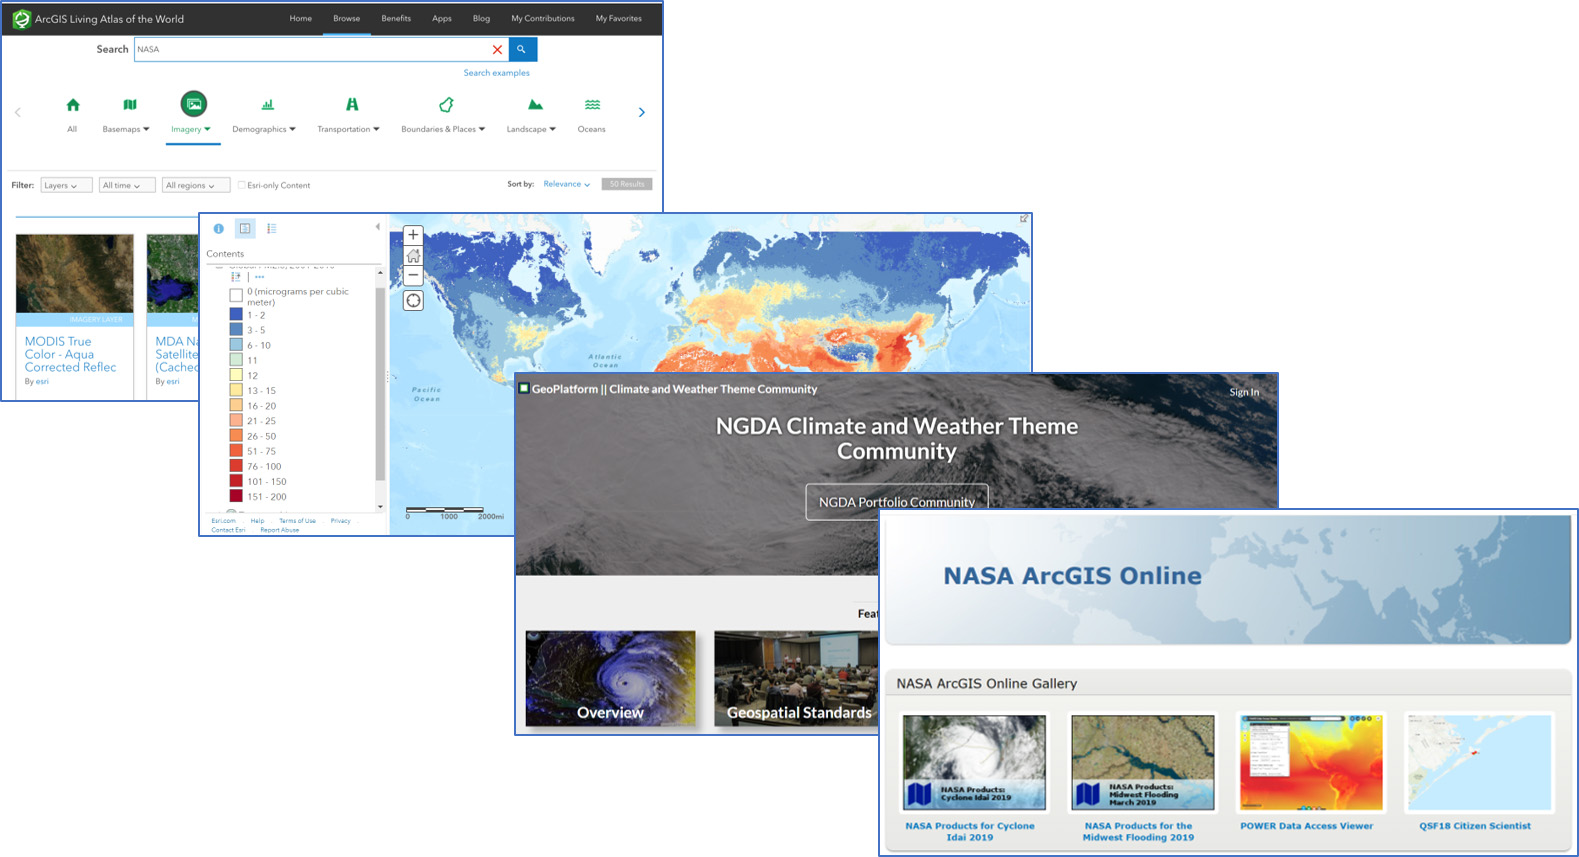 Screenshots of various GIS tools demonstrated in the webinar.